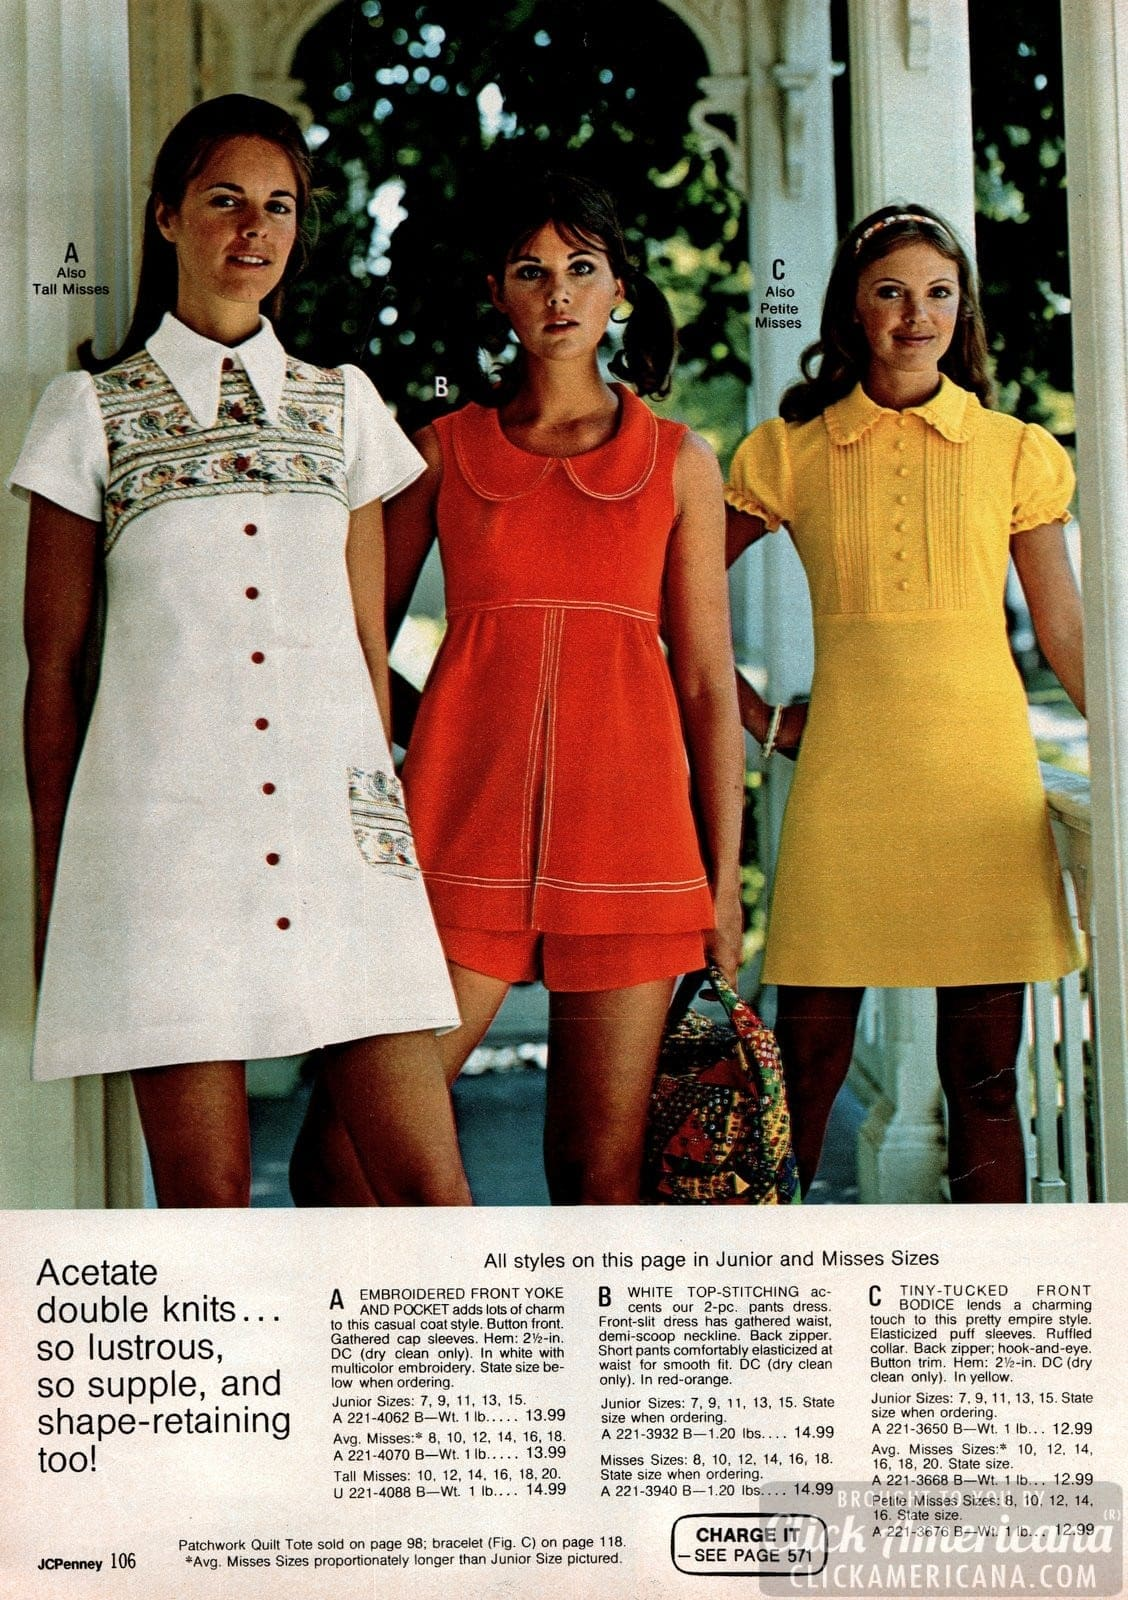 Hip vintage '70s dresses & skirts from the spring & summer of 1973